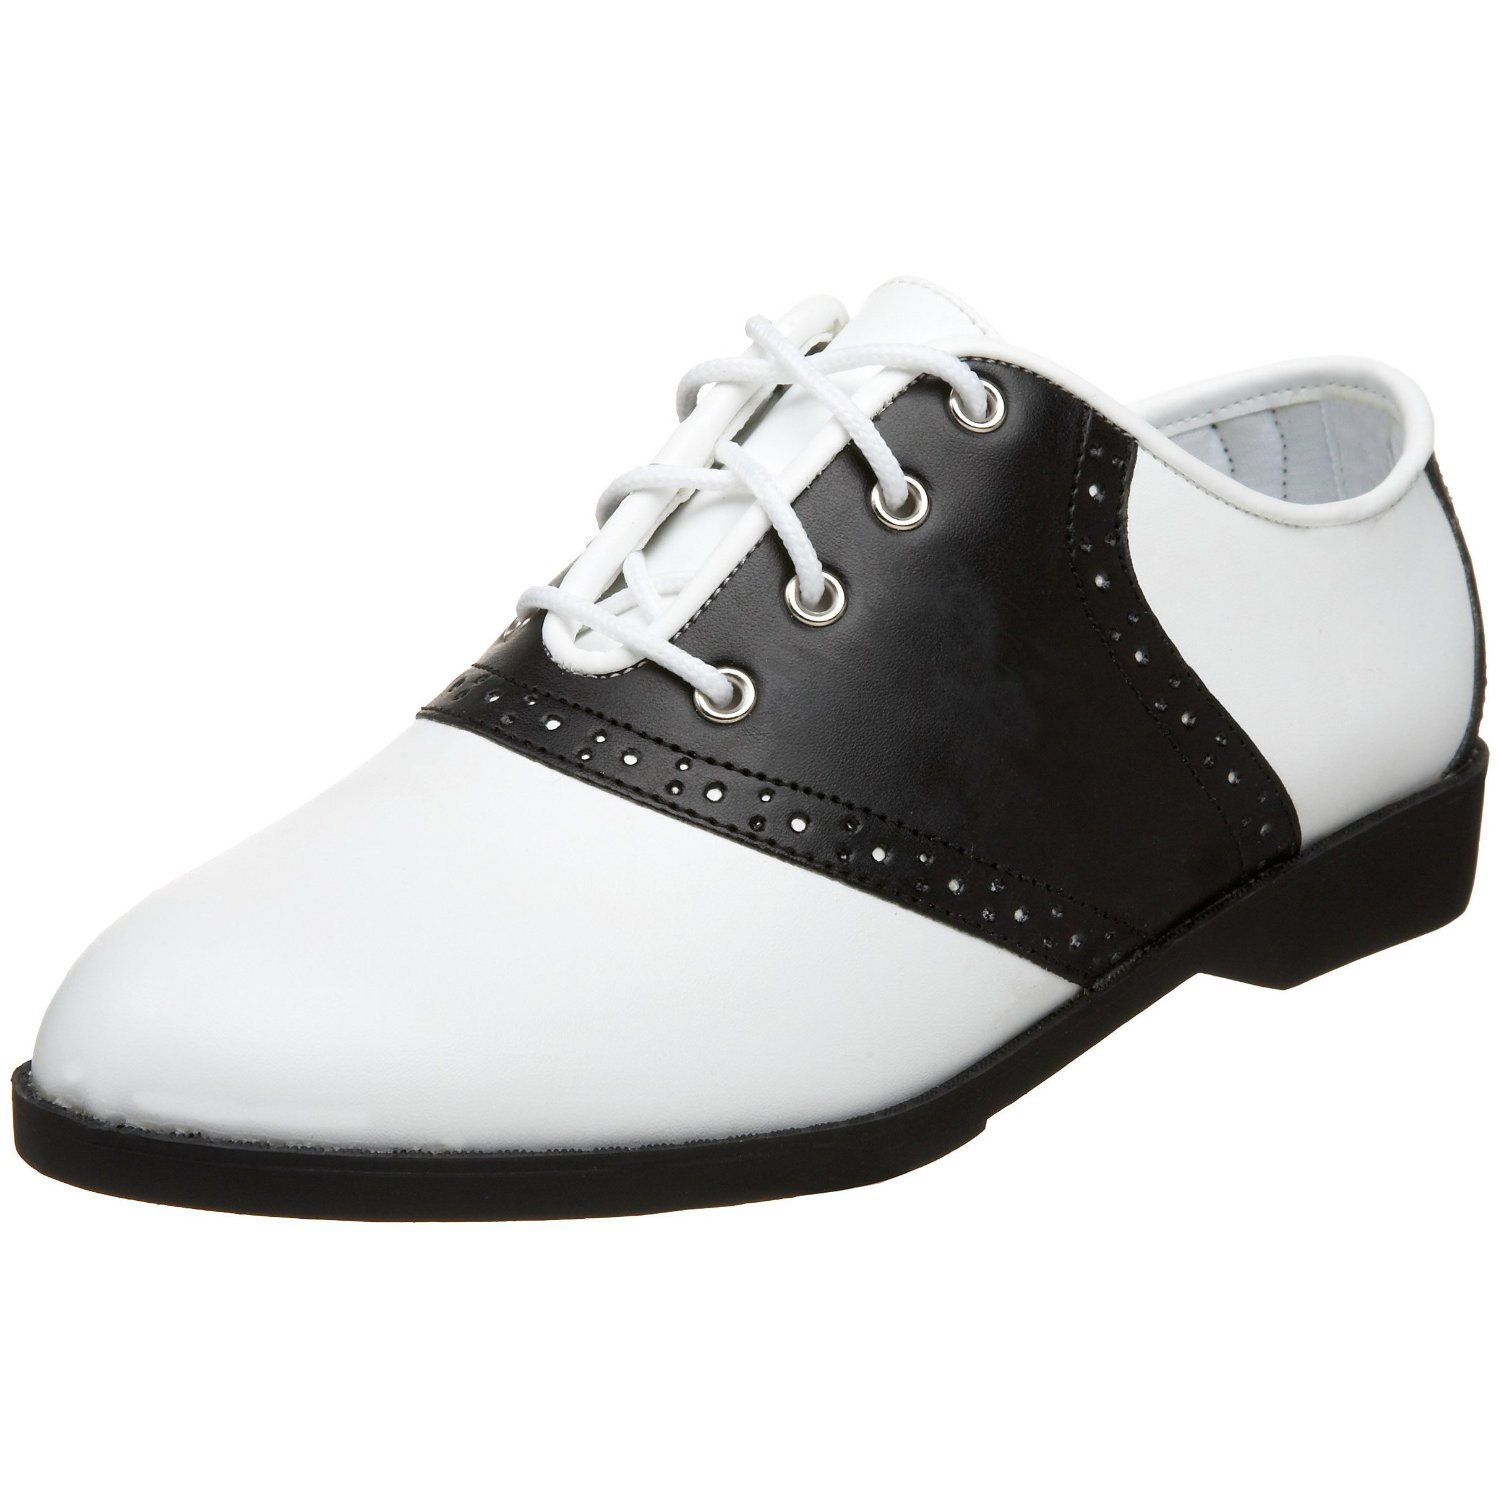 1950s Style Shoes | Heels, Flats, Saddle Shoes Ladies Saddle Shoes 1950s Costume Shoes 1950s Saddle Shoes White/Black $29.88 AT vintagedancer.com